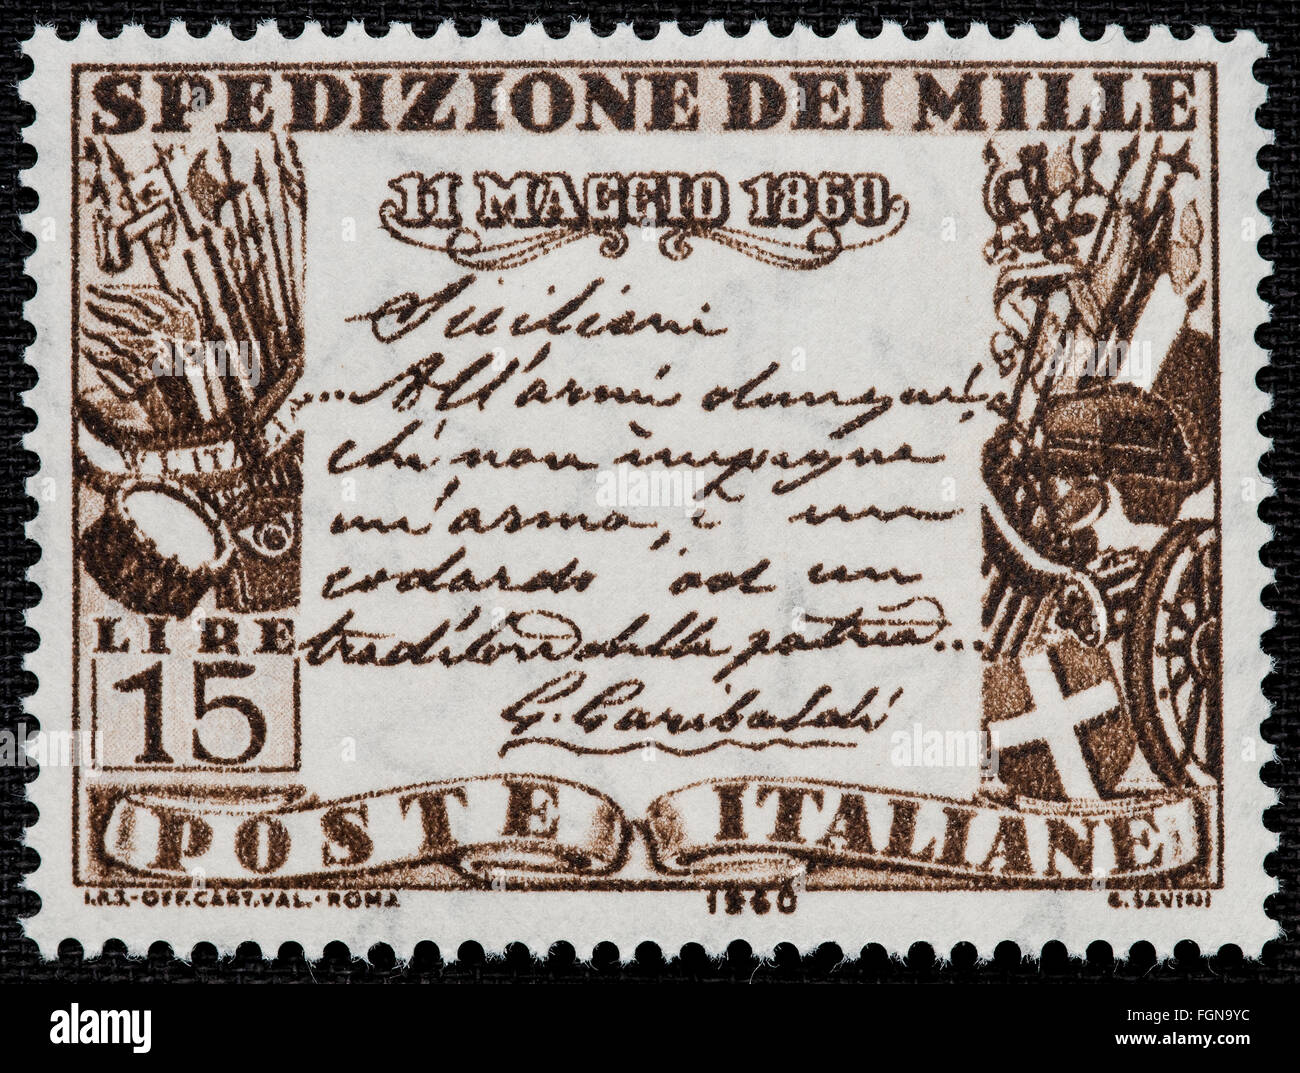 1960 - Italian mint stamp issued to commemorate the the 'Mille' expedition Lire 15 - Stock Image